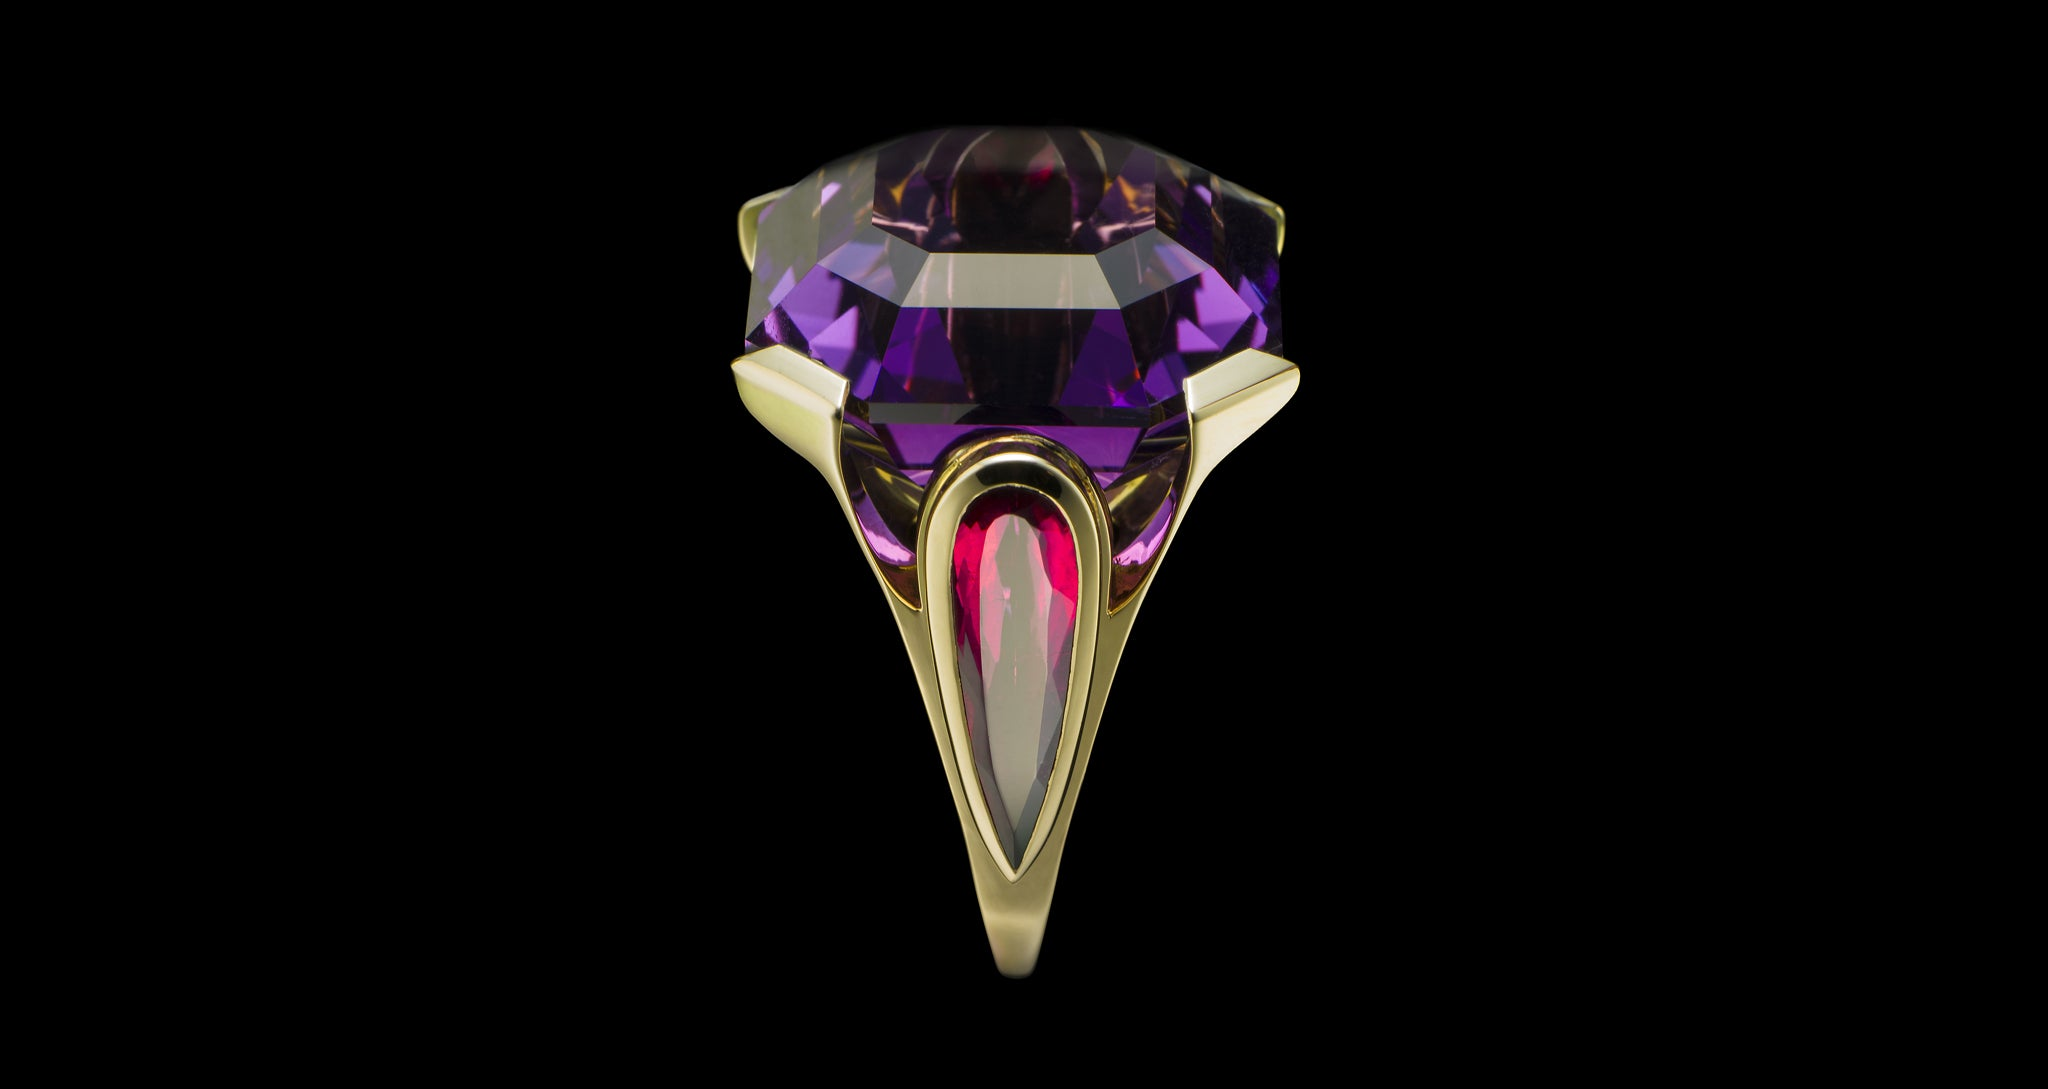 DEEP PURPLE RING